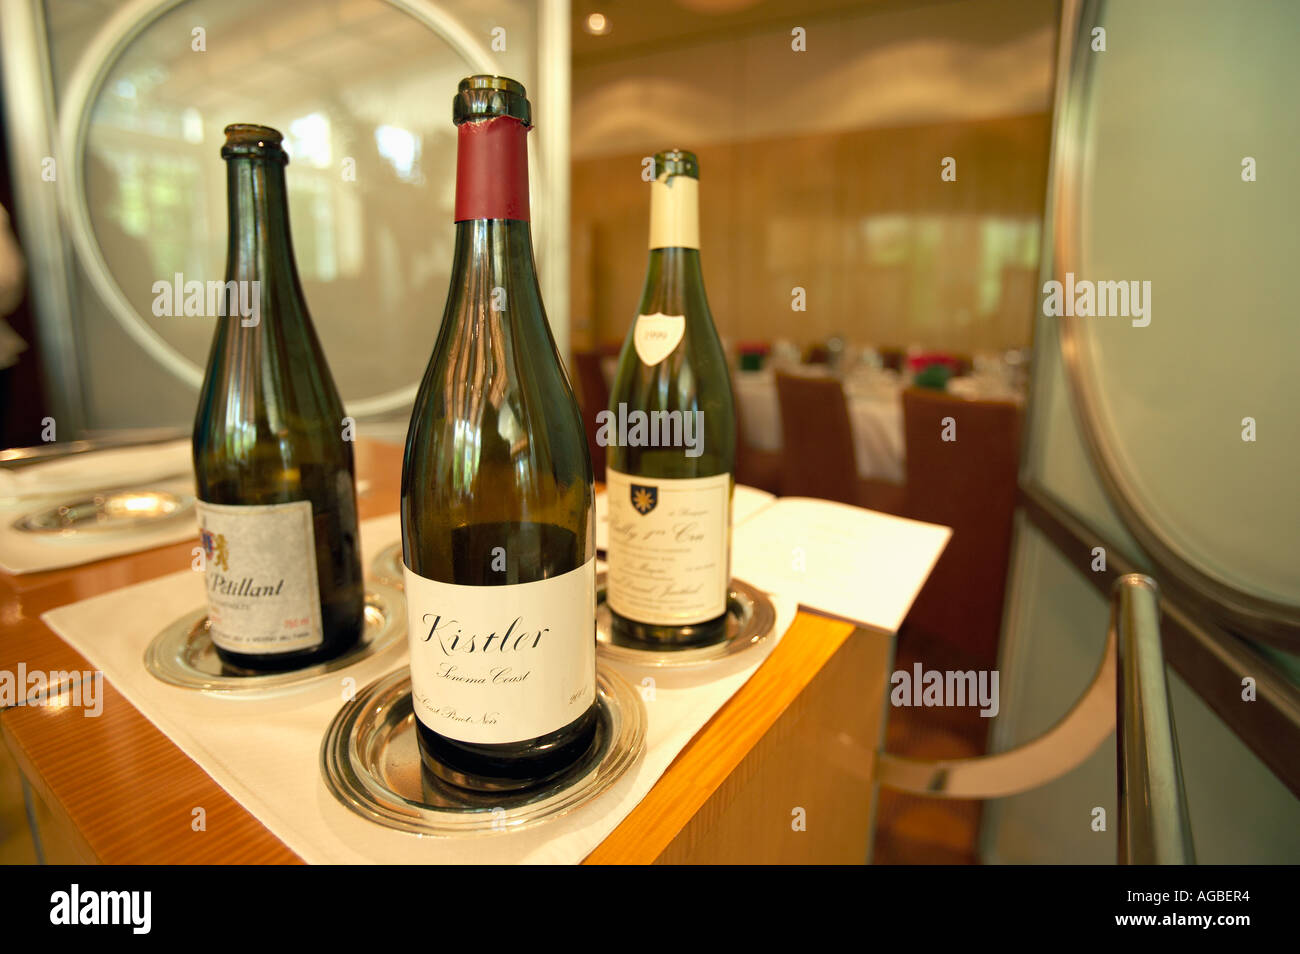 Wine Angels Stock Photos & Wine Angels Stock Images - Alamy